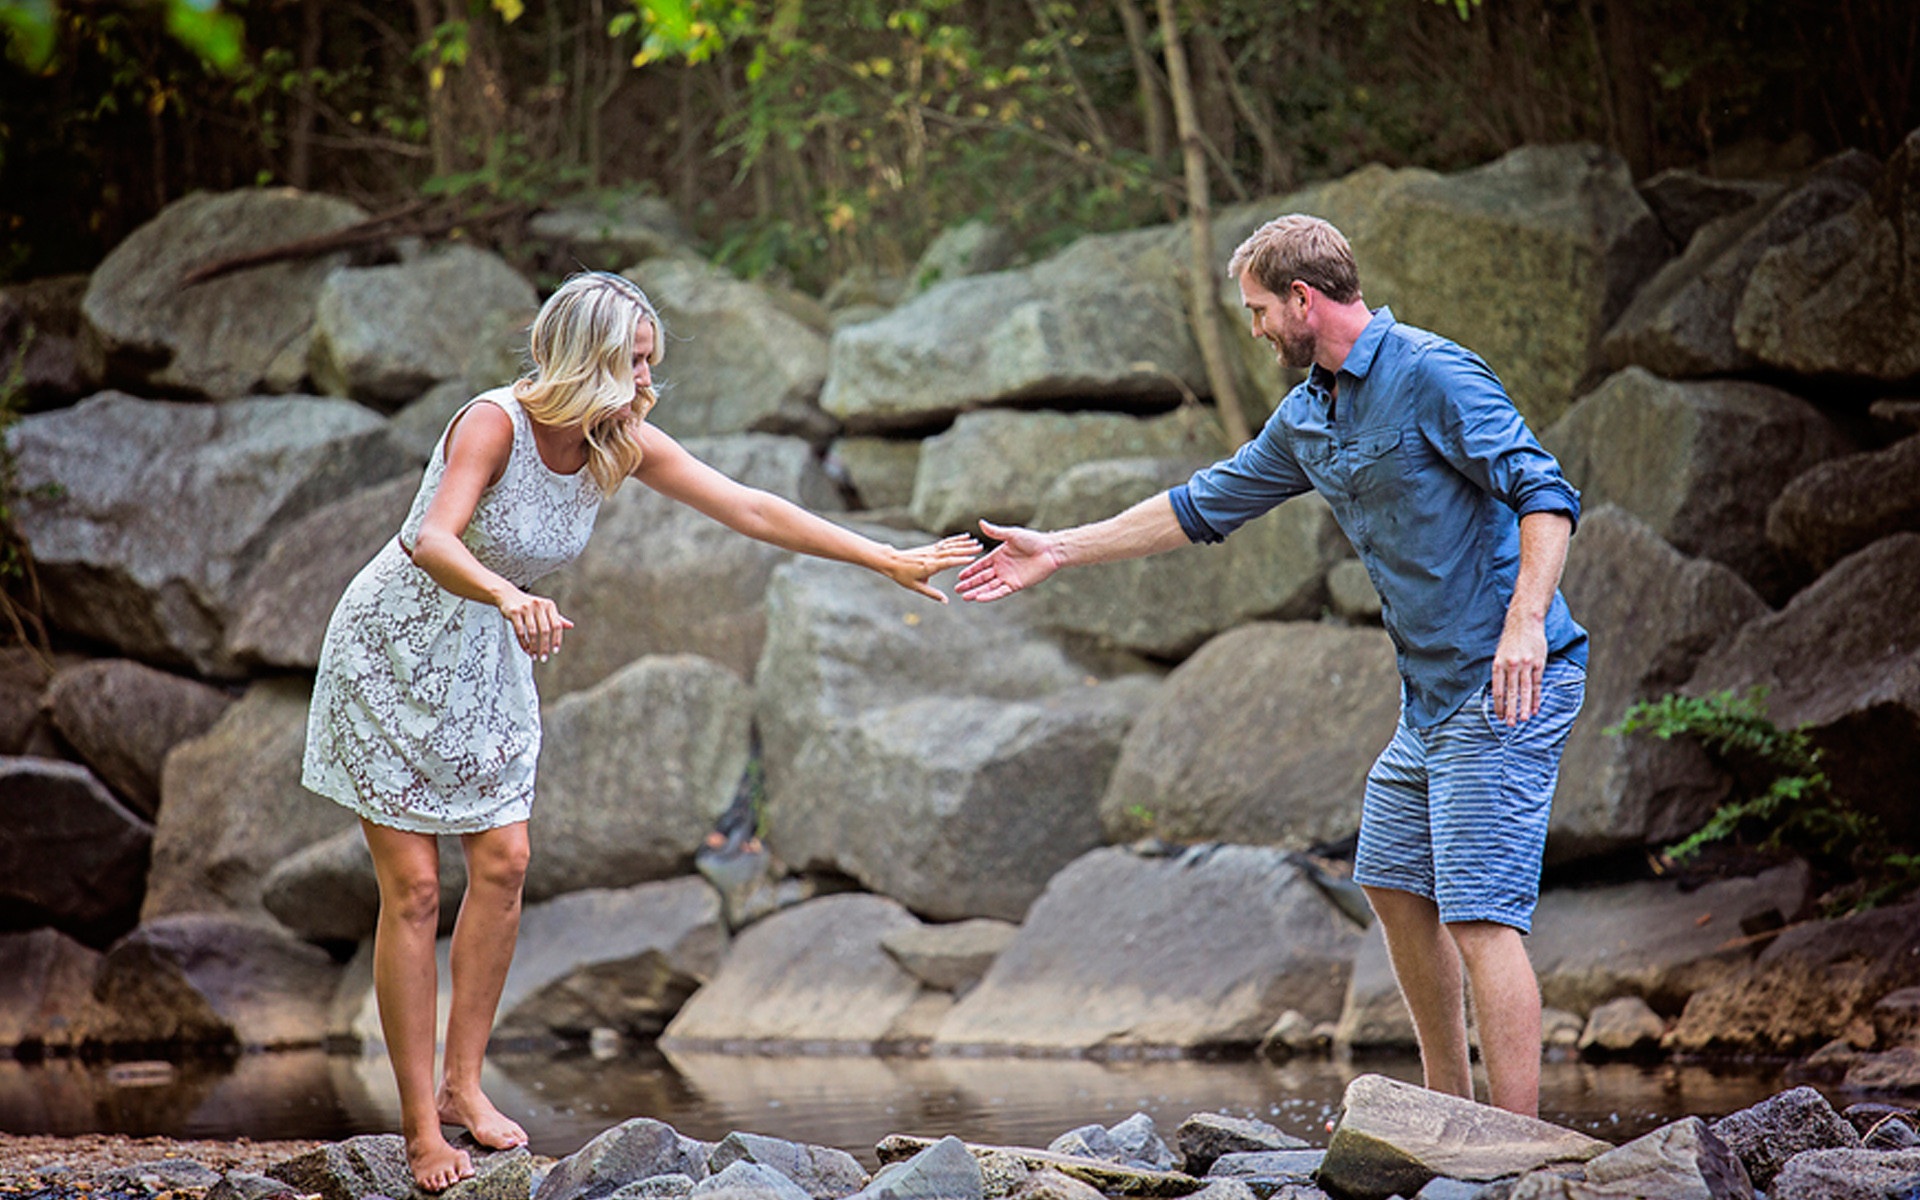 The perfect proposal? A storybook of their love story!